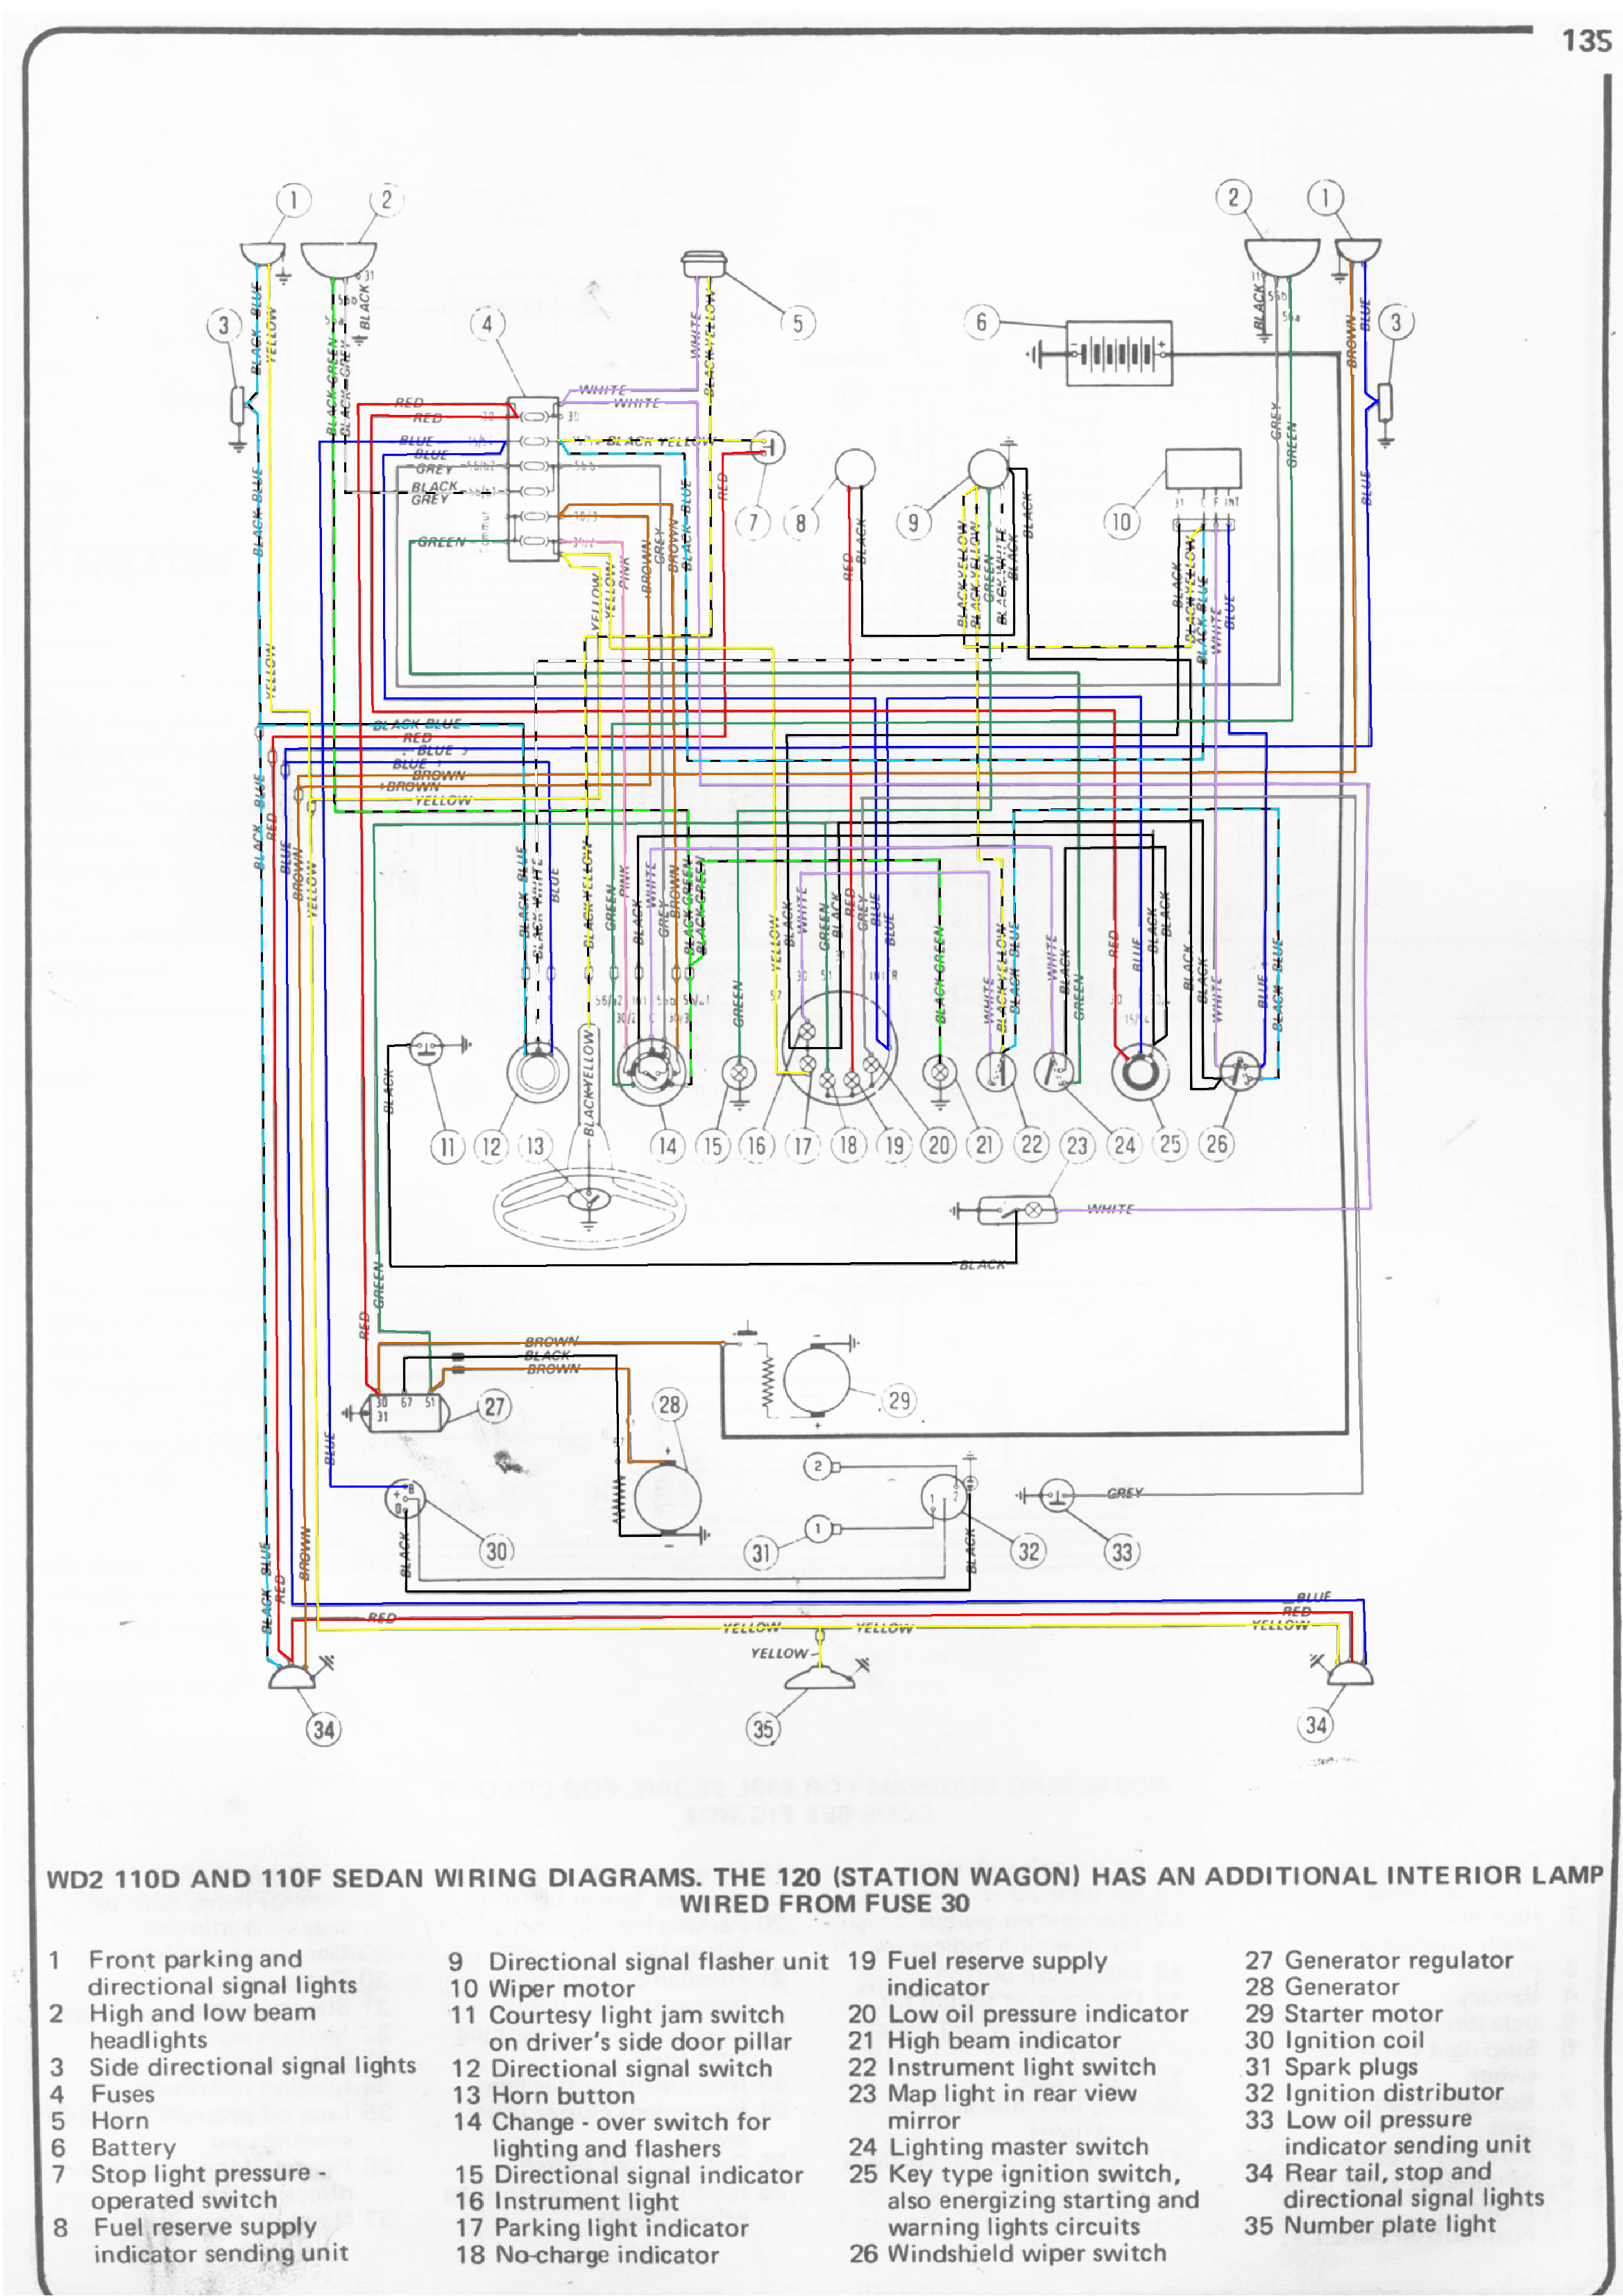 medium resolution of fiat punto towbar wiring diagram wiring diagram todaysfiat multipla towbar wiring diagram wiring diagrams electrical wiring